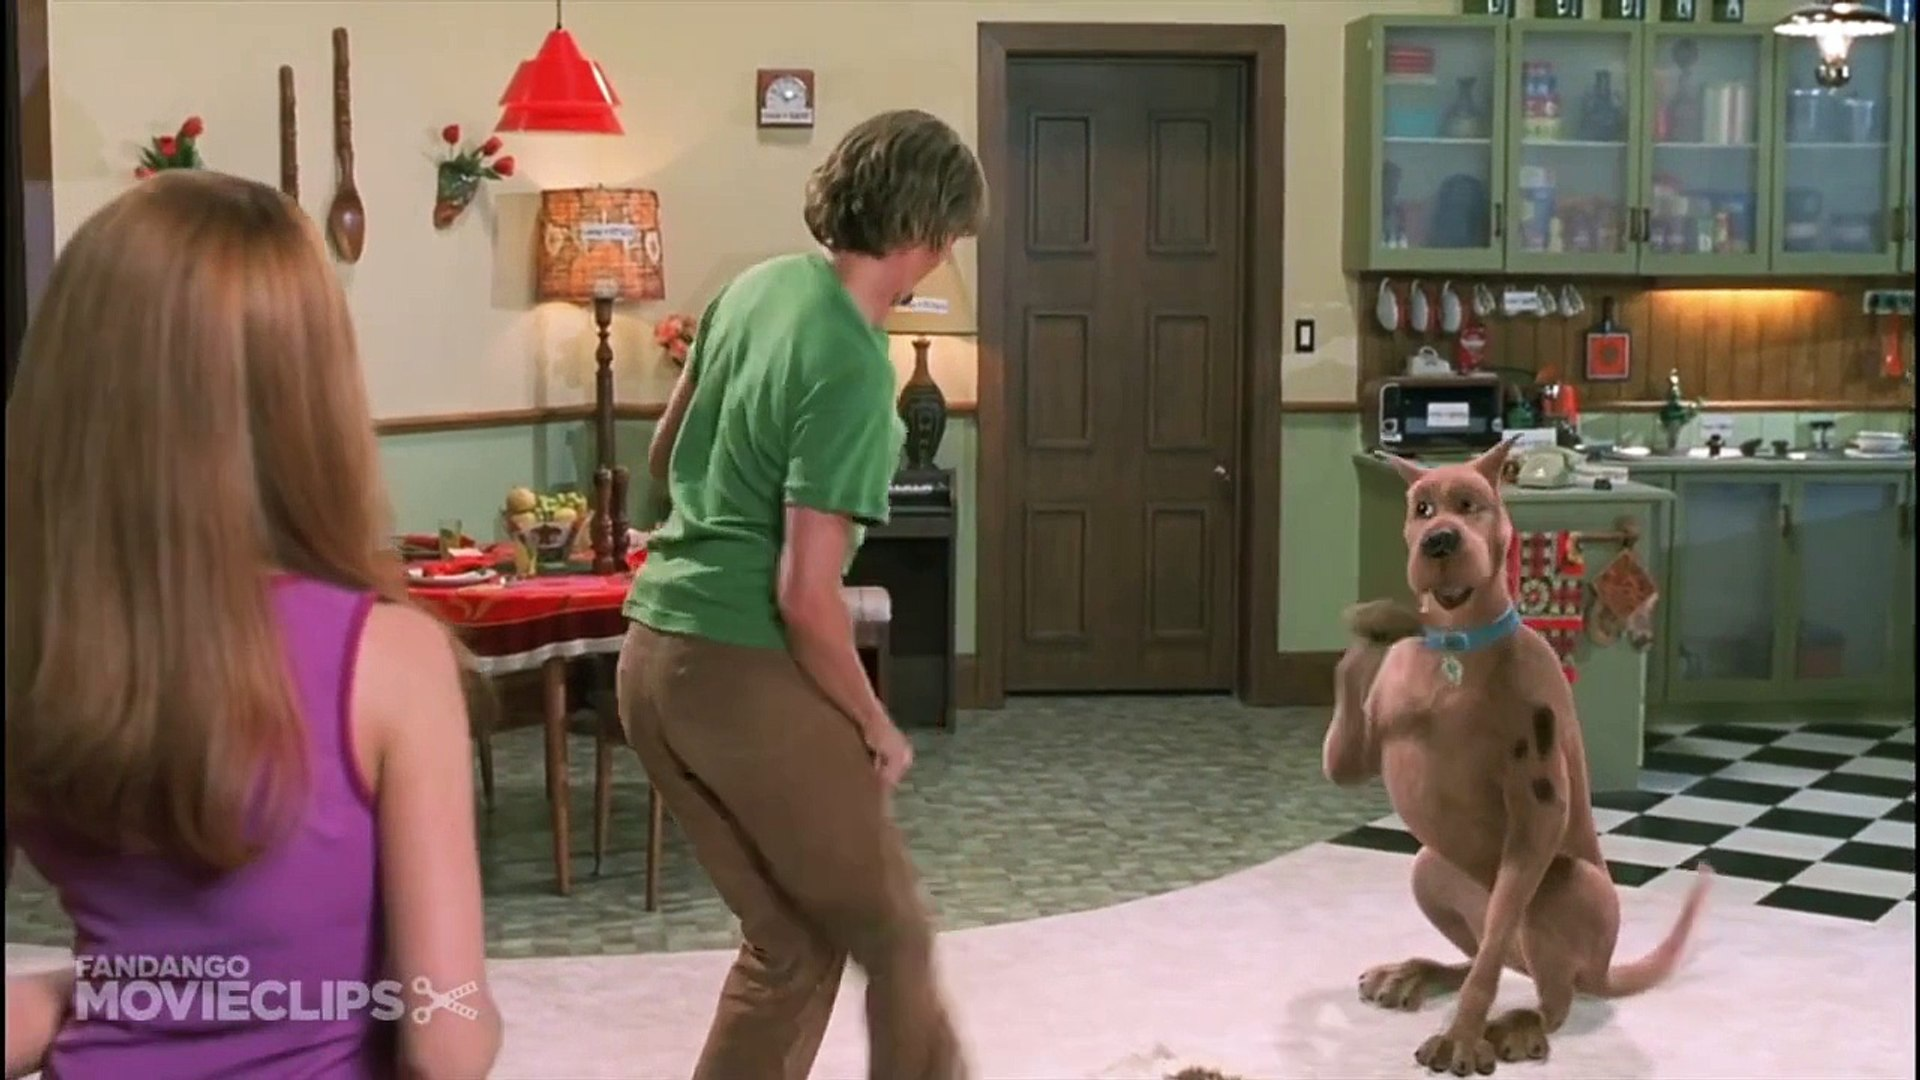 It's not funny when Shaggy and Scooby have a fart battle in Scooby-Doo: The movie, but it becomes cringe-worthy as it goes on for a whole minute.